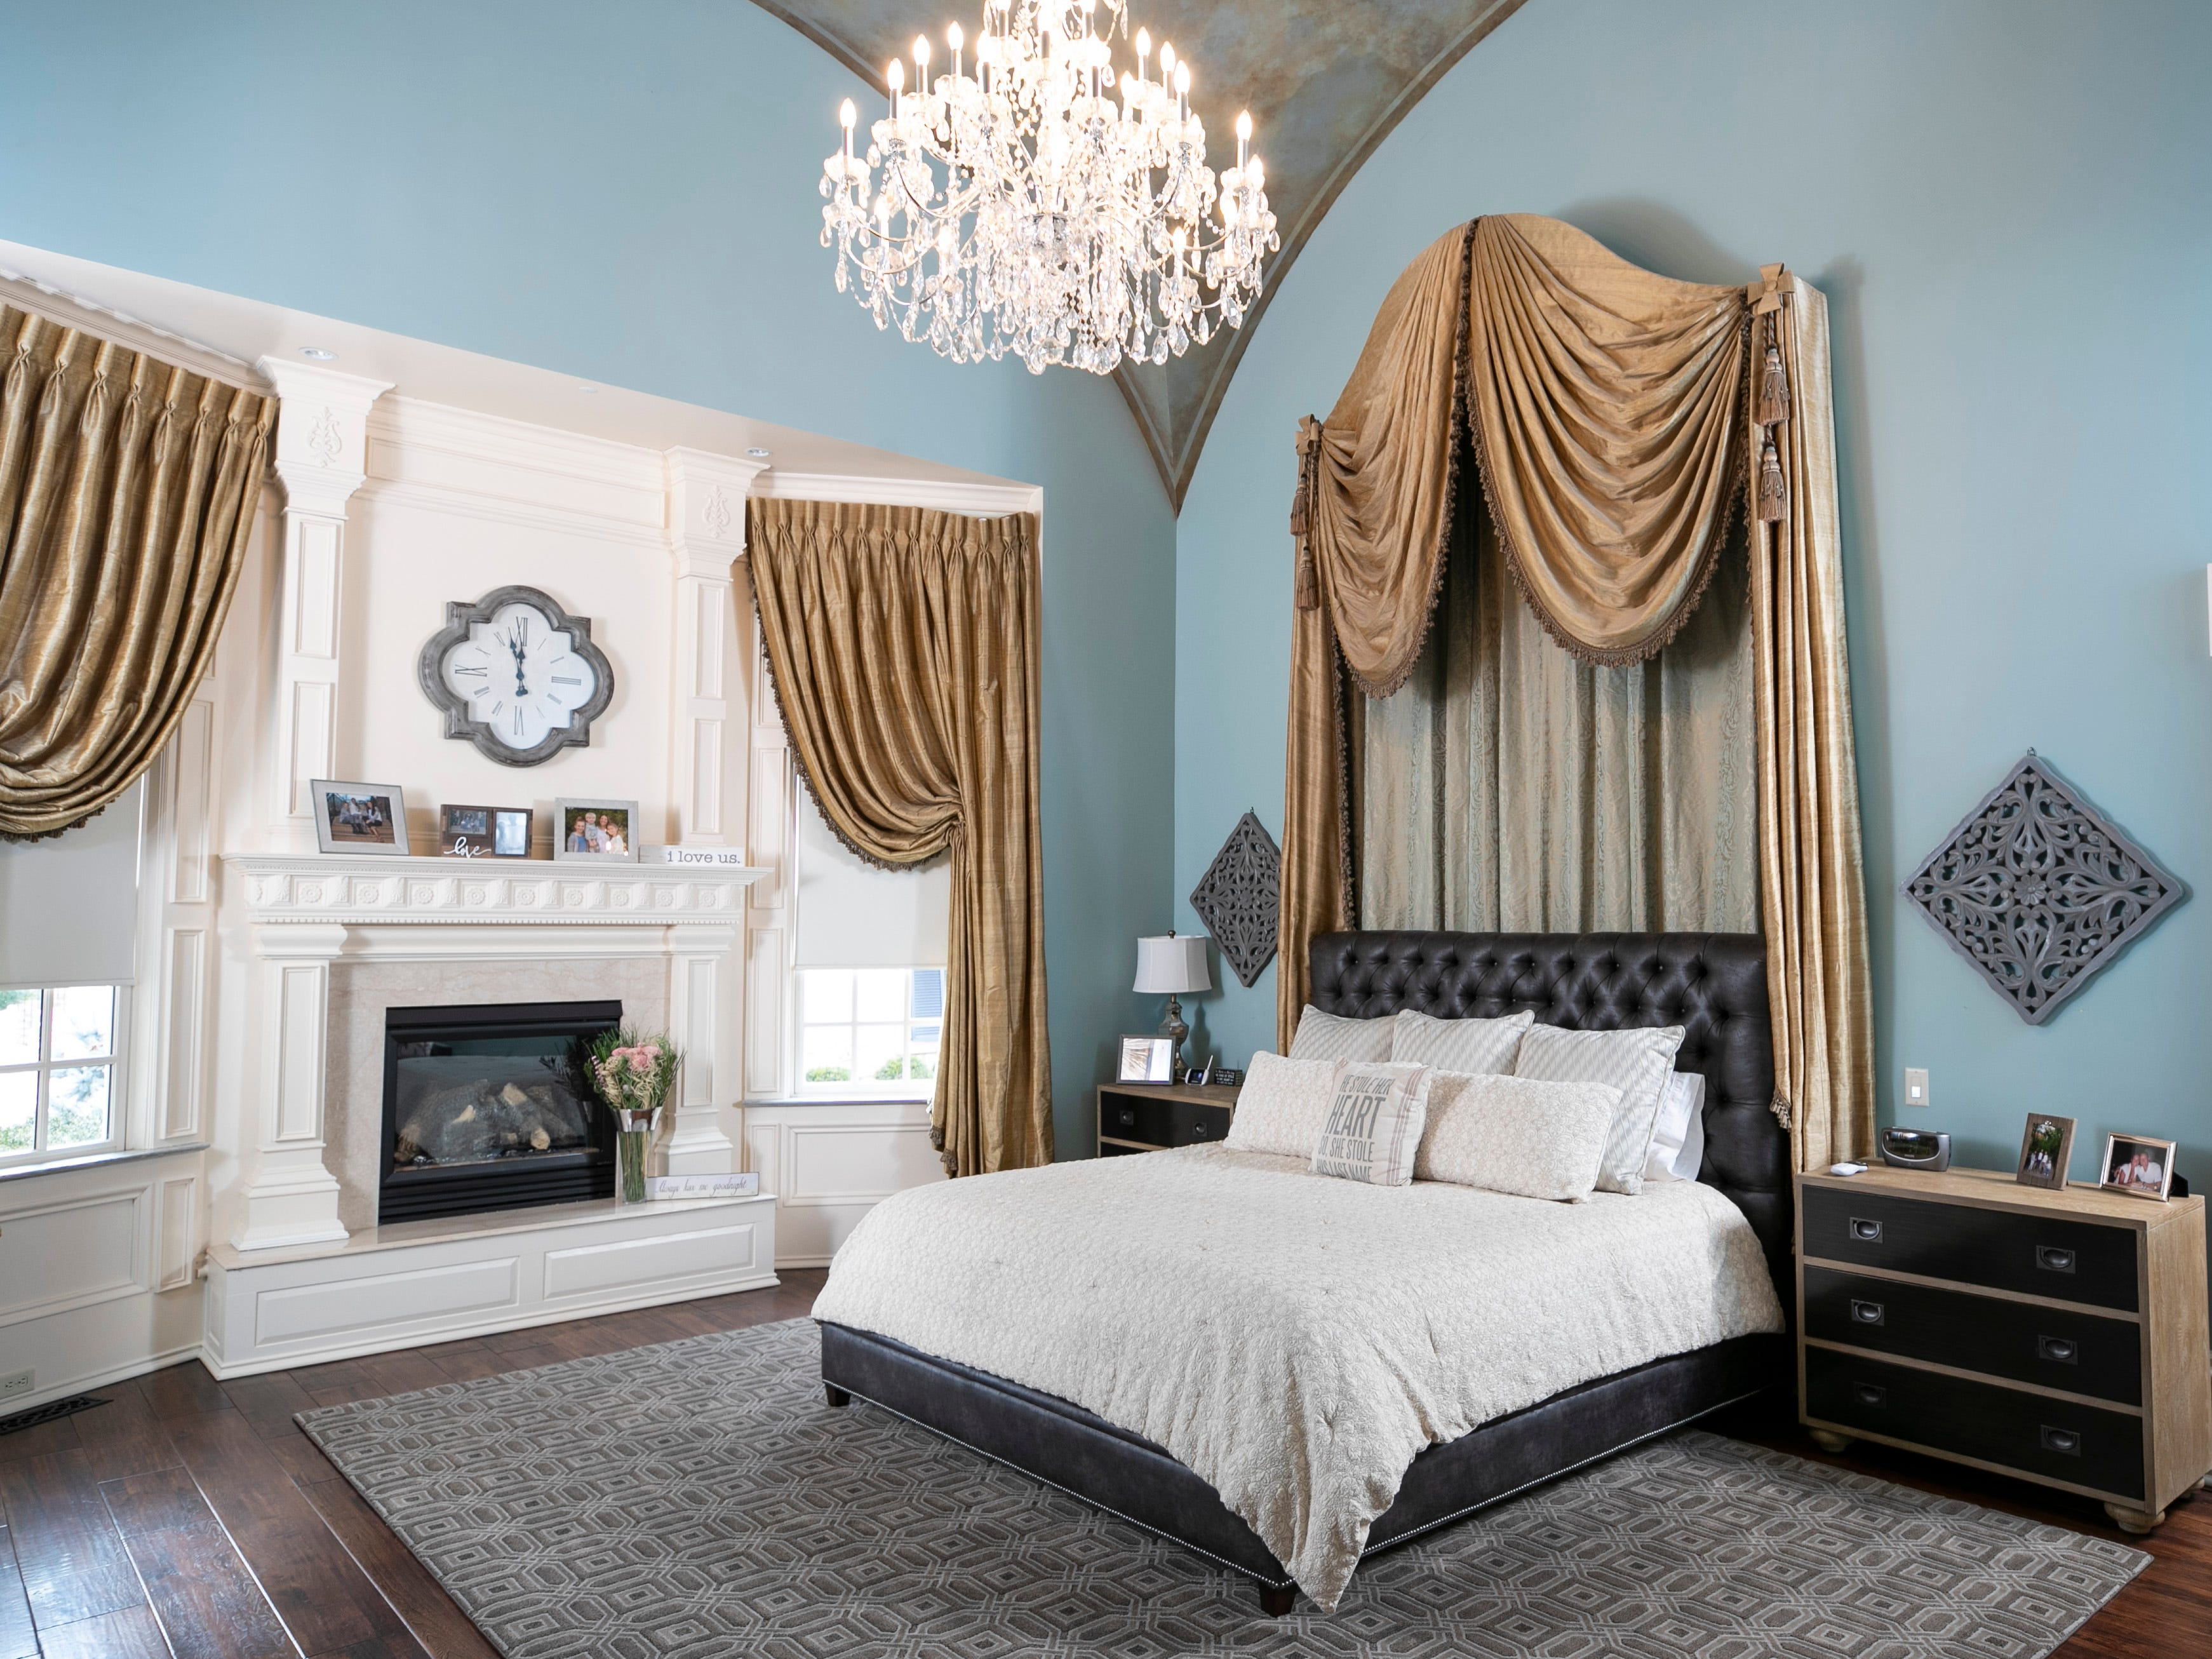 The master bedroom of the Mack home.